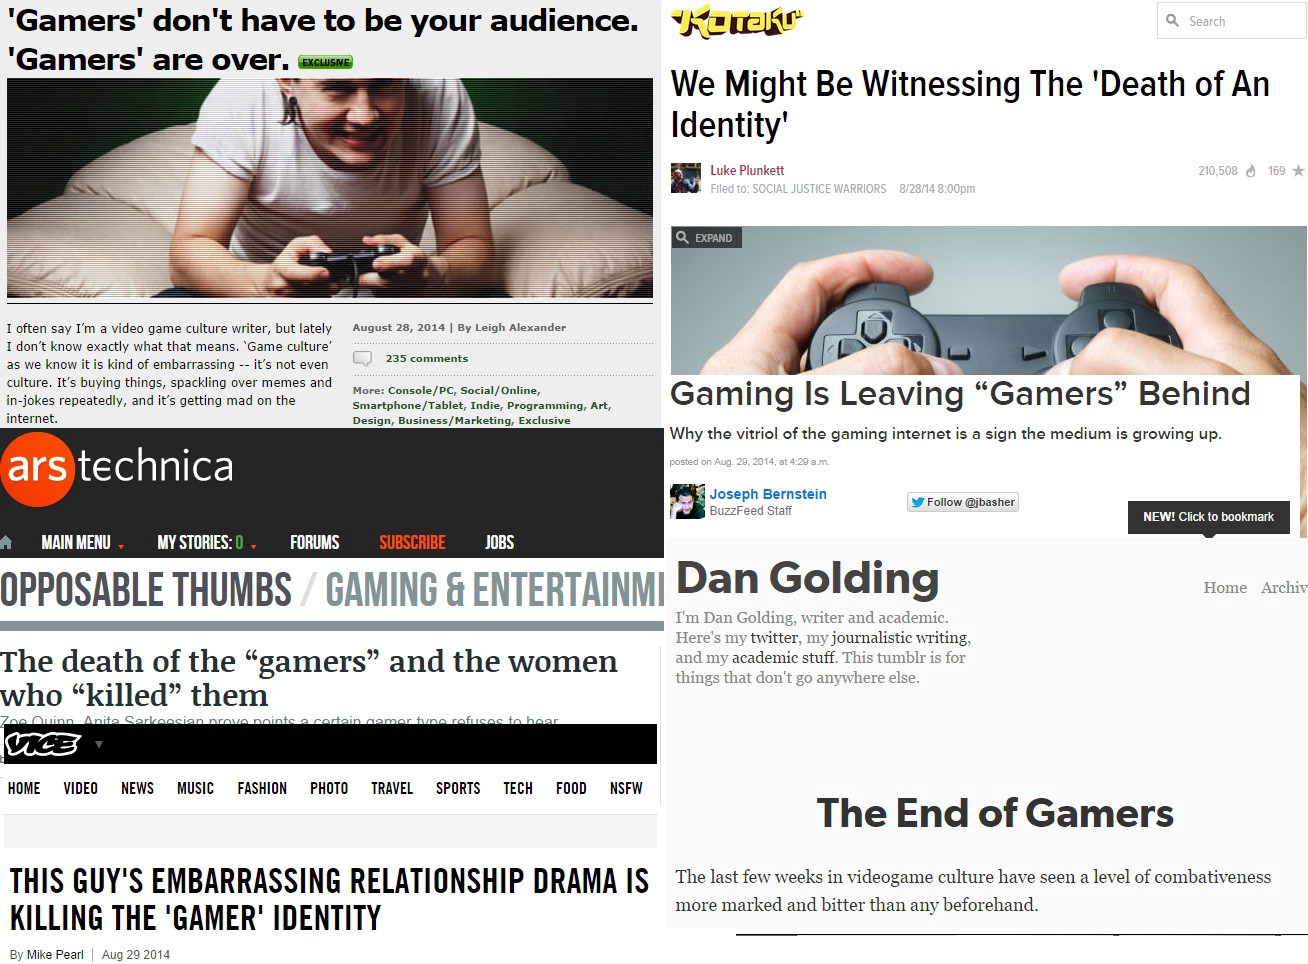 Gamergate The response to declaring war on video games